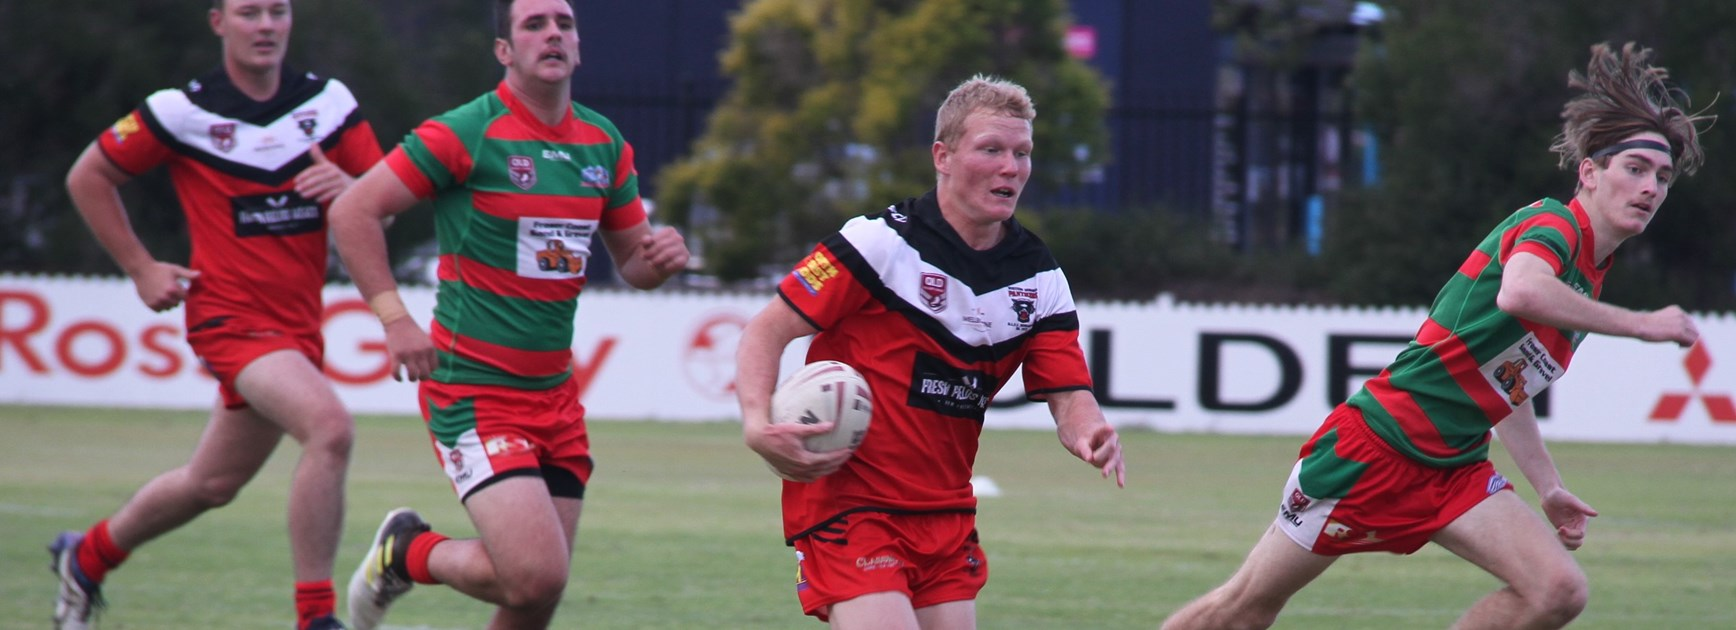 Wests Panthers purr into action against Hervey Bay Seagulls